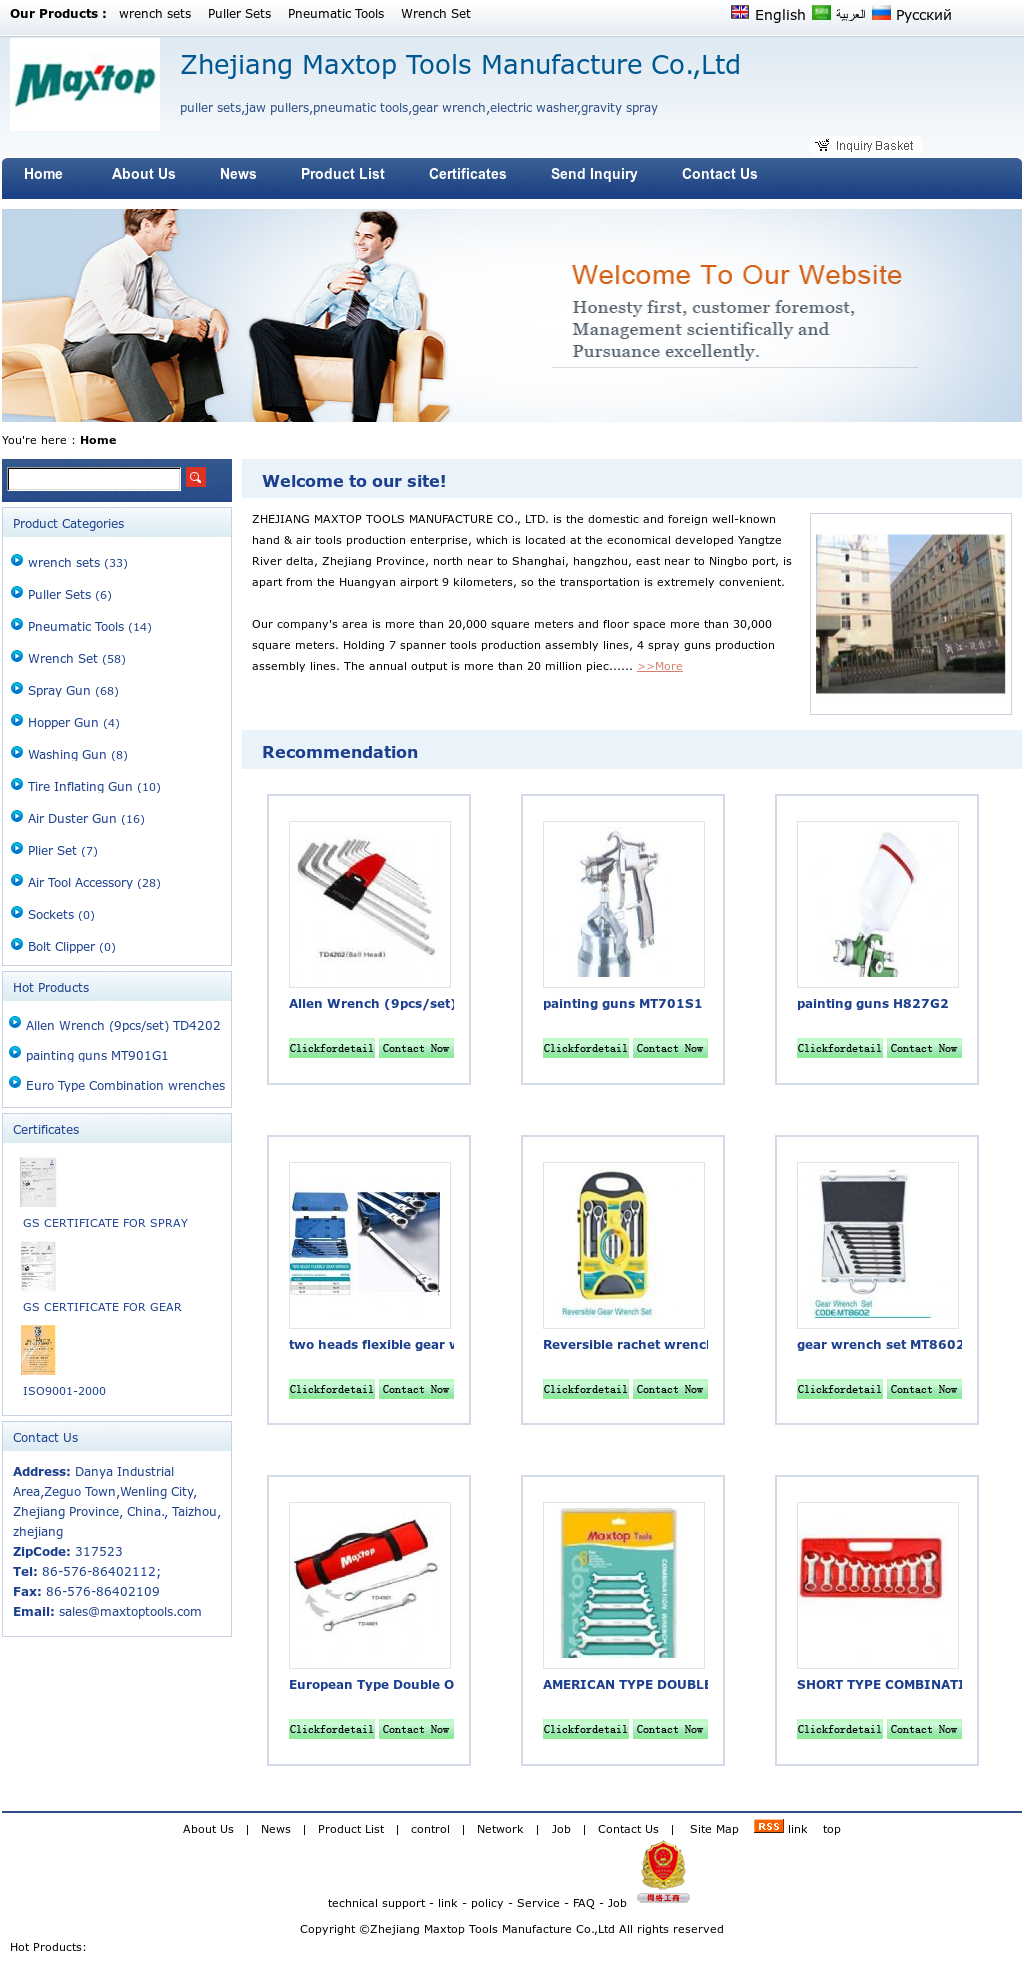 Zhejiang Maxtop Tools Manufacture Competitors, Revenue and Employees ...